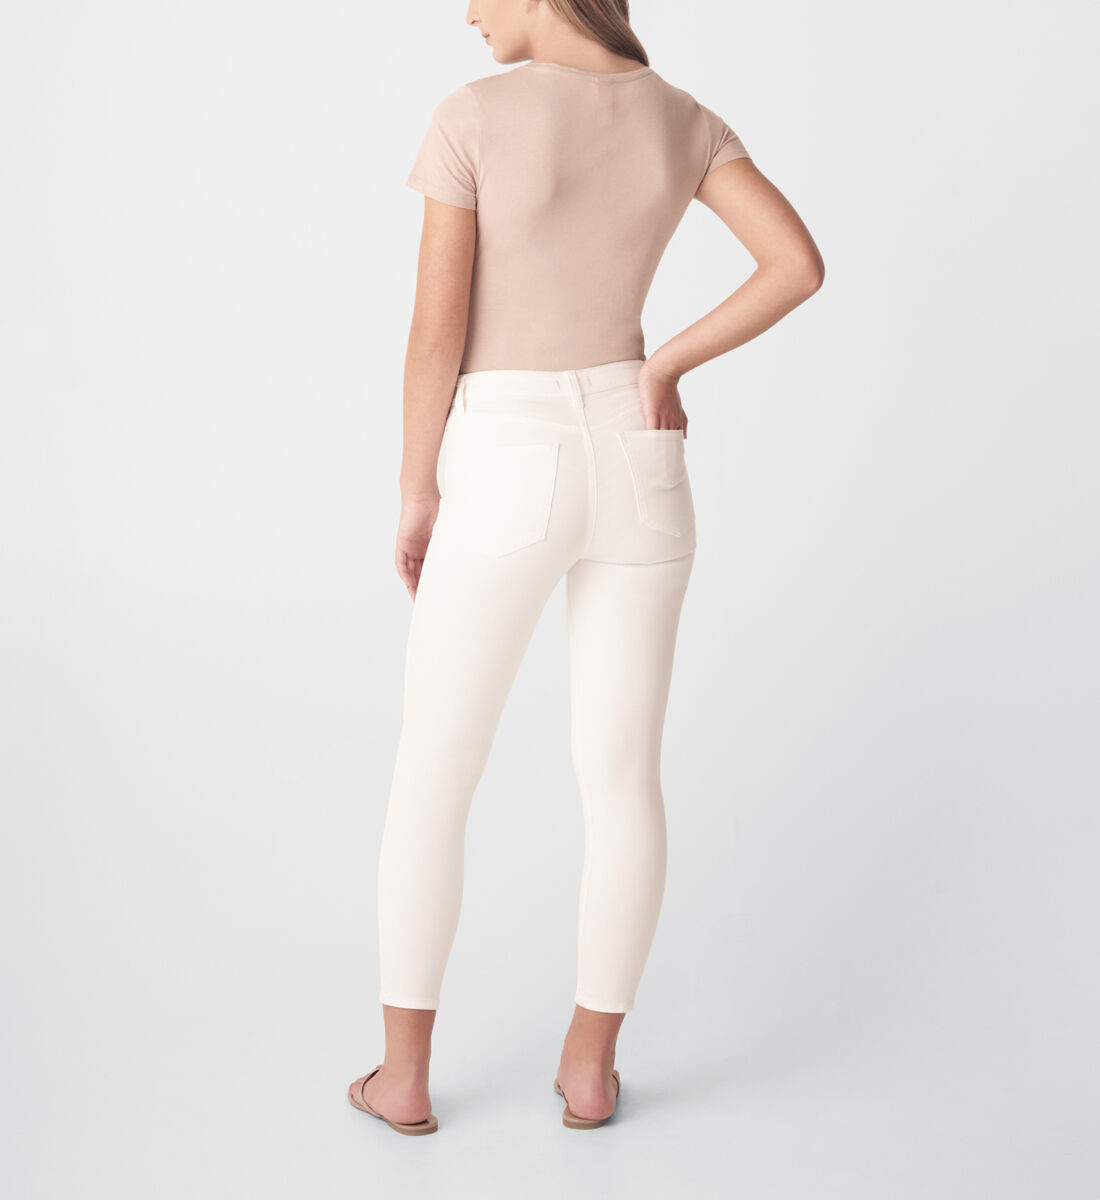 Most Wanted Mid Rise Skinny Jeans,White Back